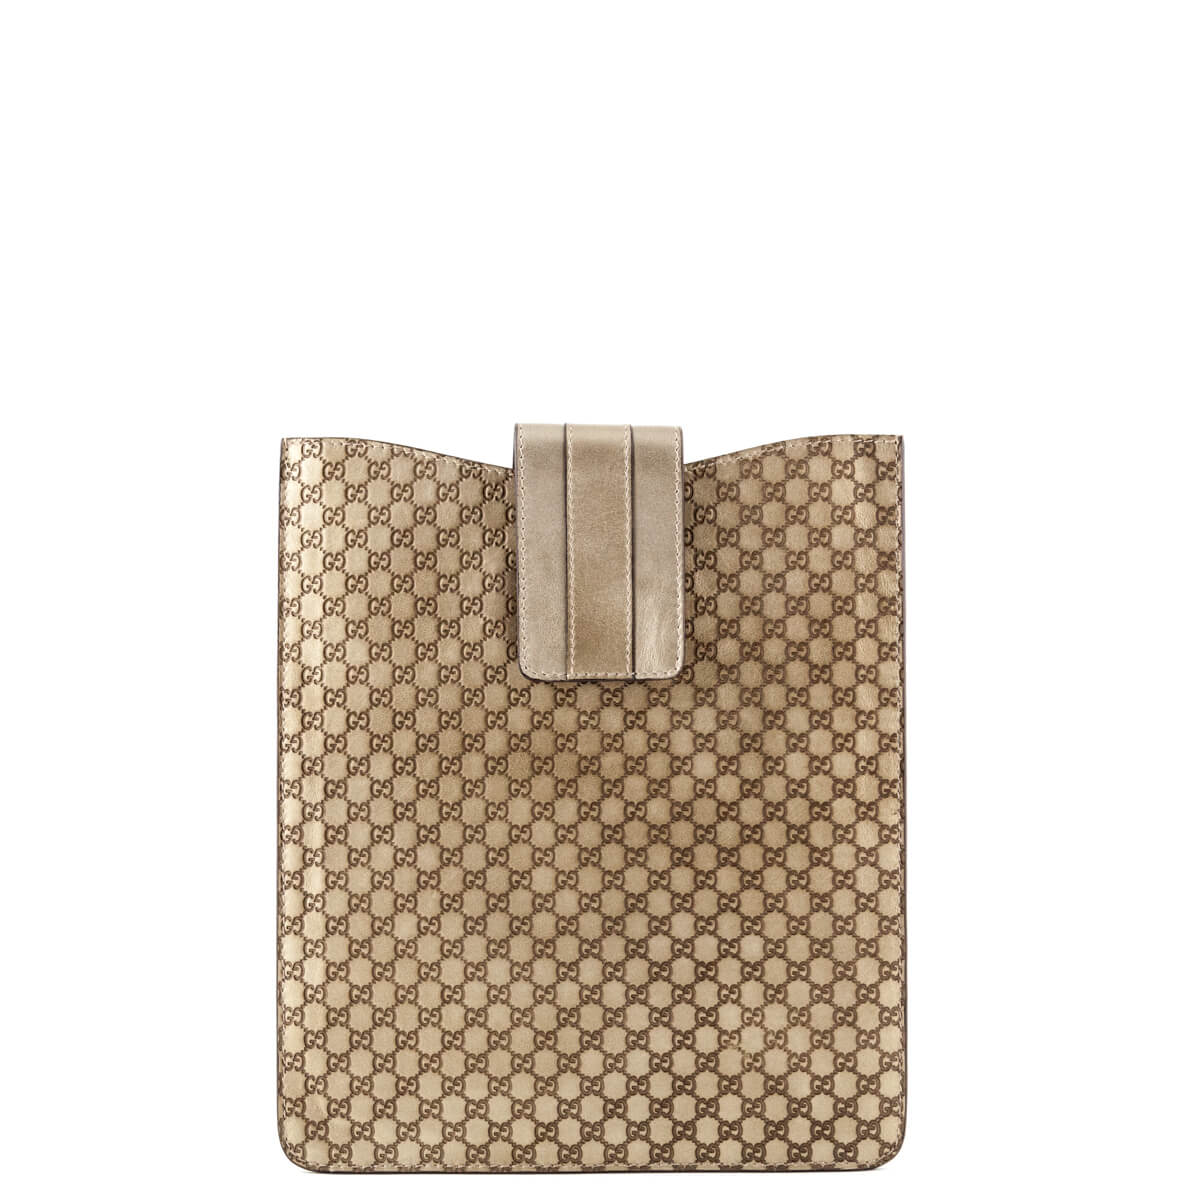 5385e697111 Gucci Bronze Guccissima iPad Sleeve - LOVE that BAG - Preowned Authentic  Designer Handbags ...